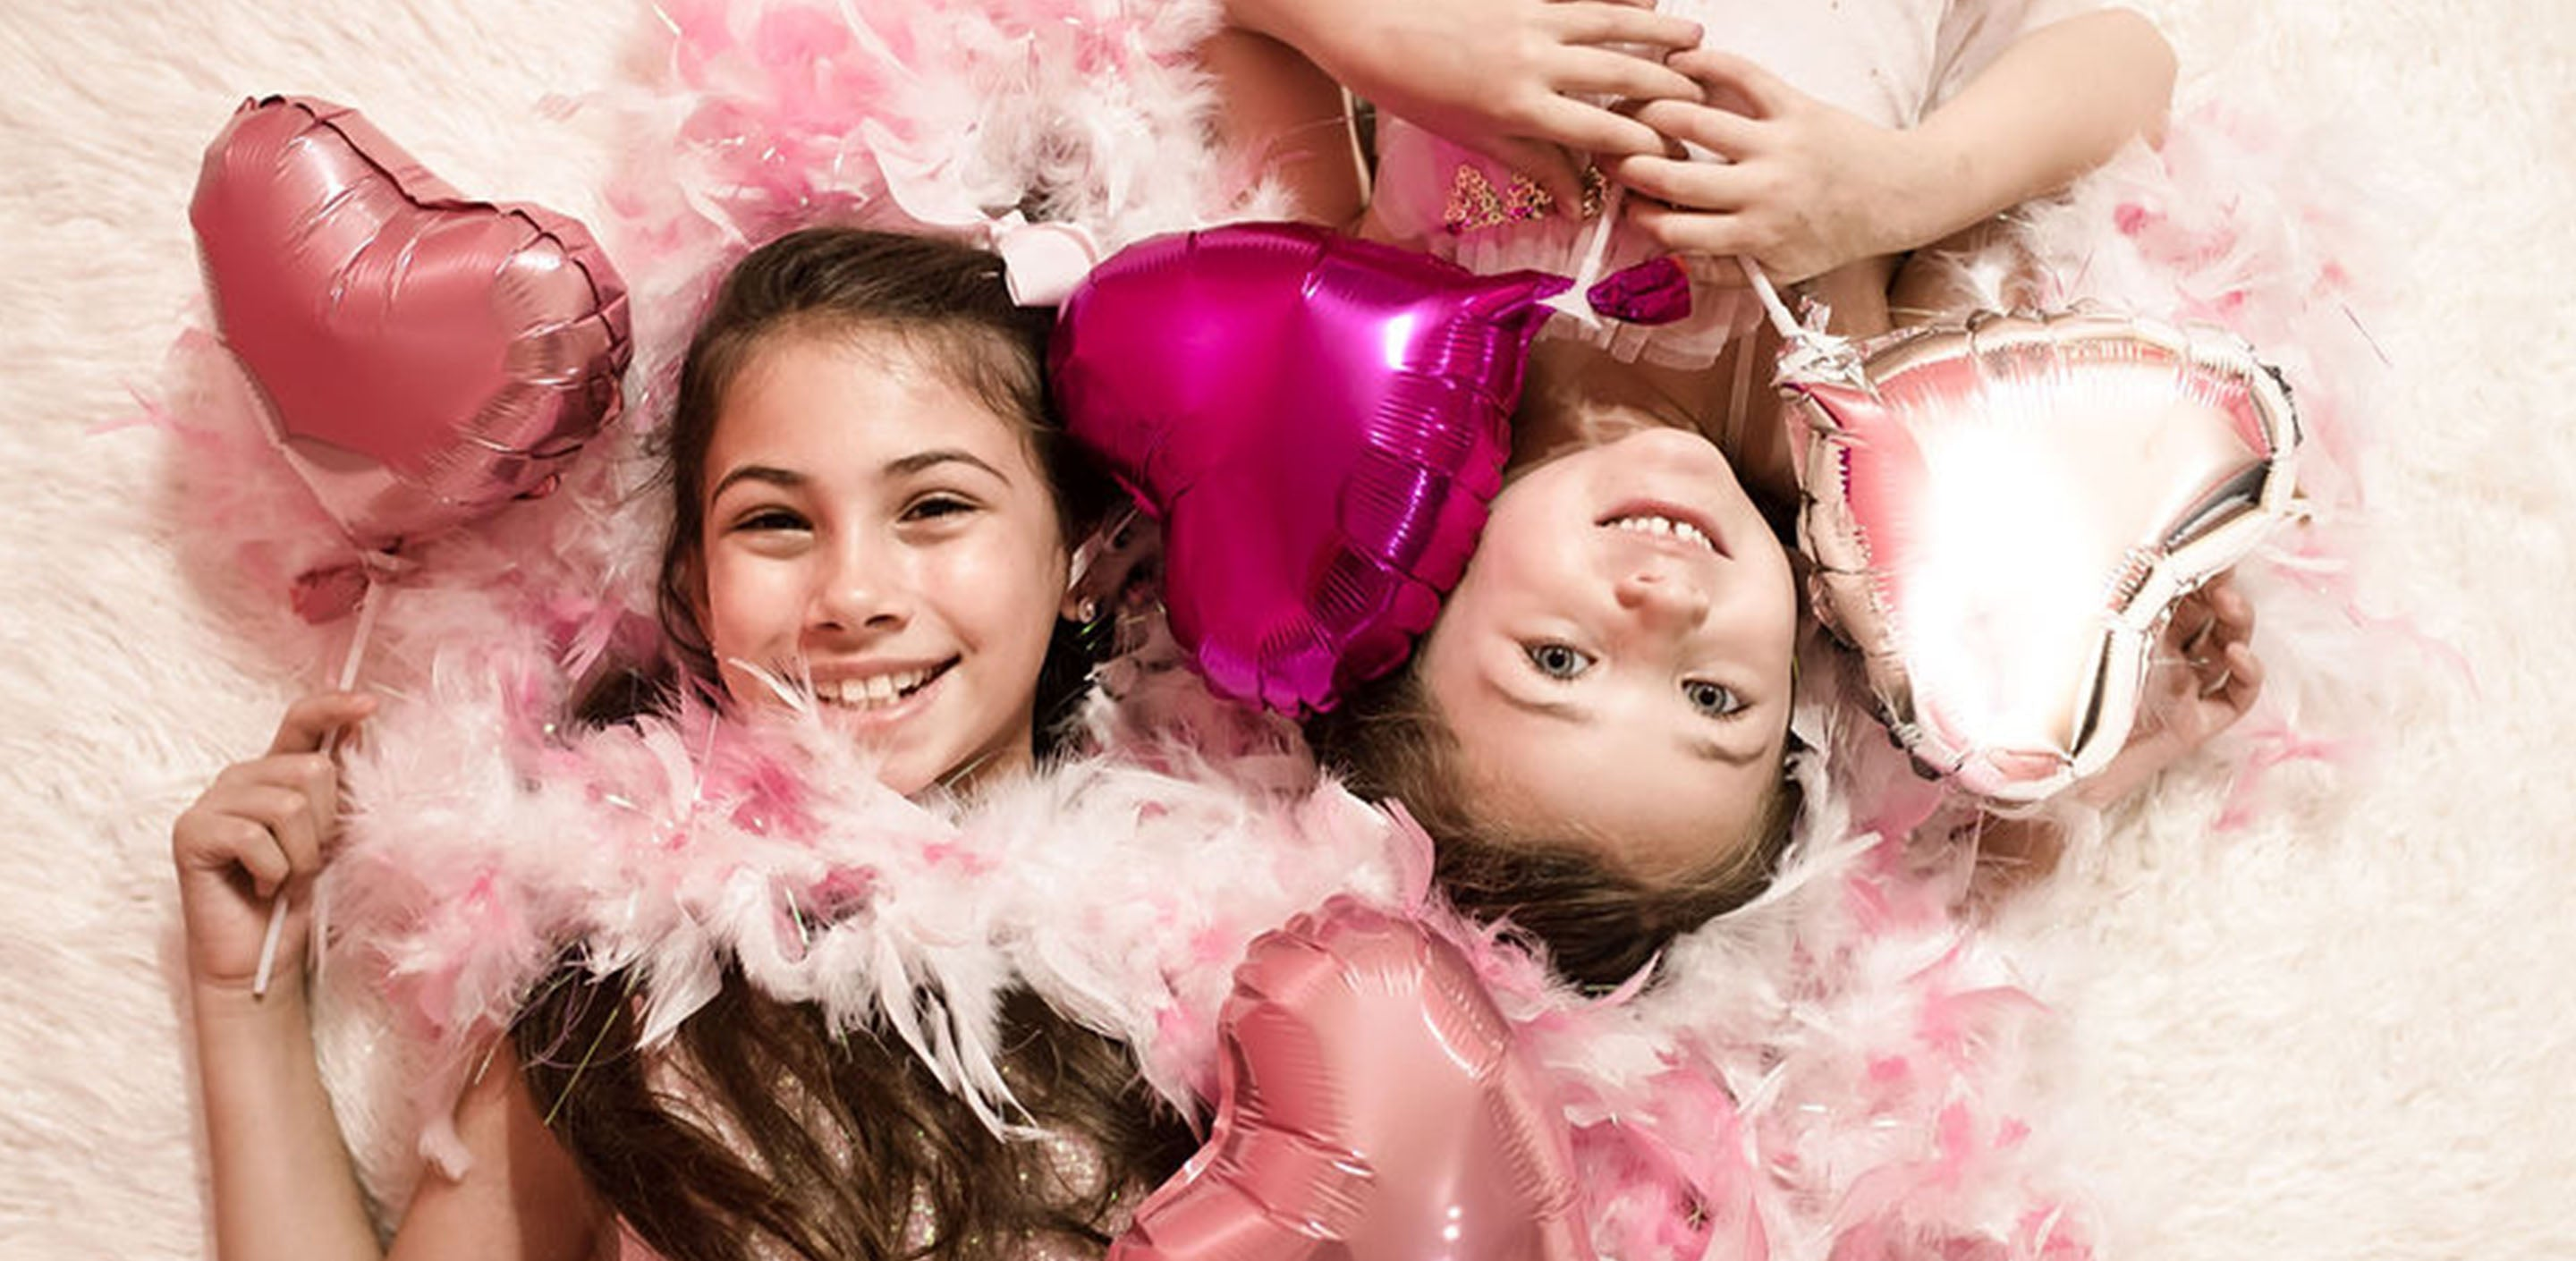 All you need is love - Valentines Day celebrations with kids